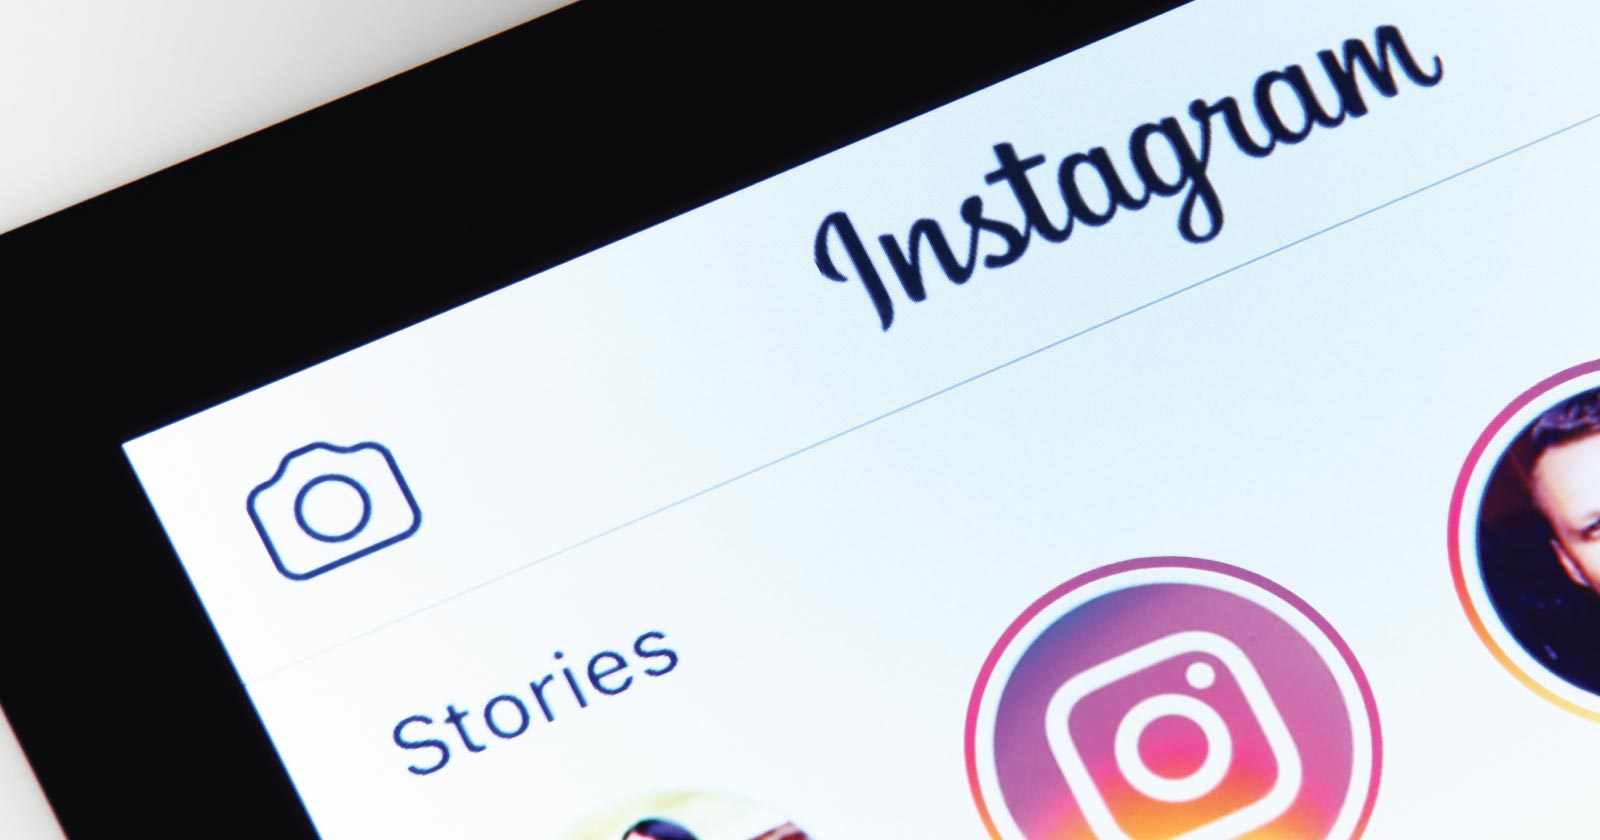 3 Time-Honored Instagram Tips to Promote Your Website Design Business Today